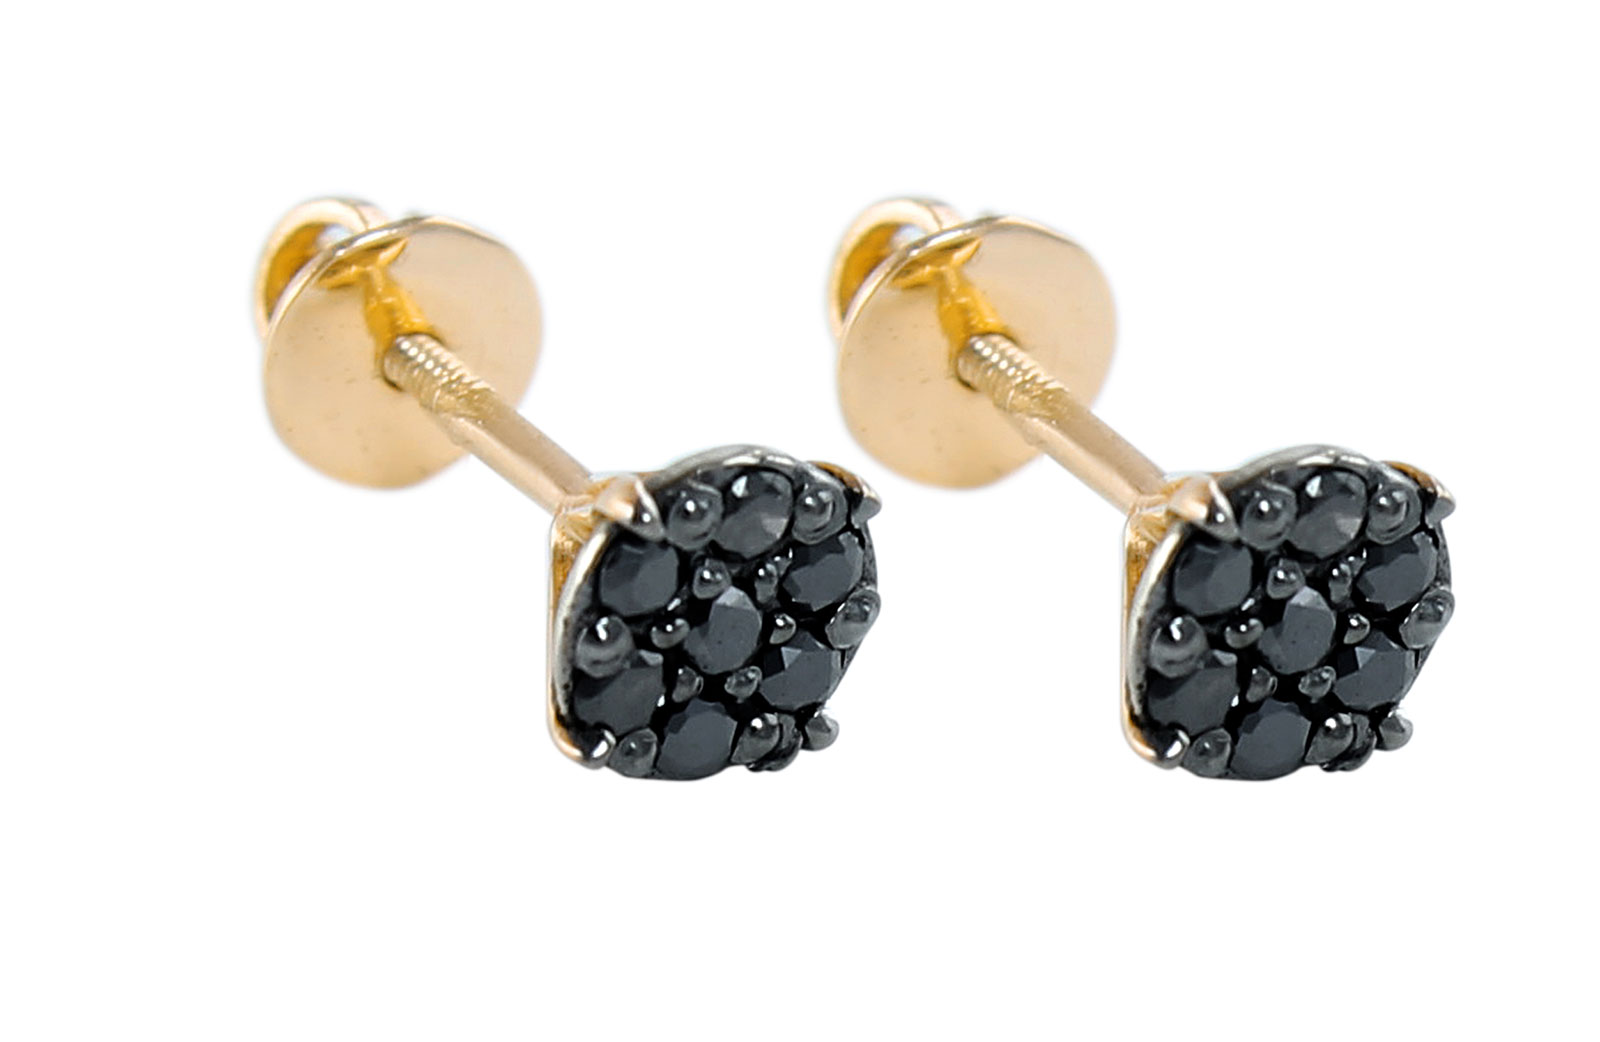 Vera Perla 18K Solid Black and Yellow Gold and 0.14Cts Genuine Black Diamonds Solitaire Screw Back Earrings